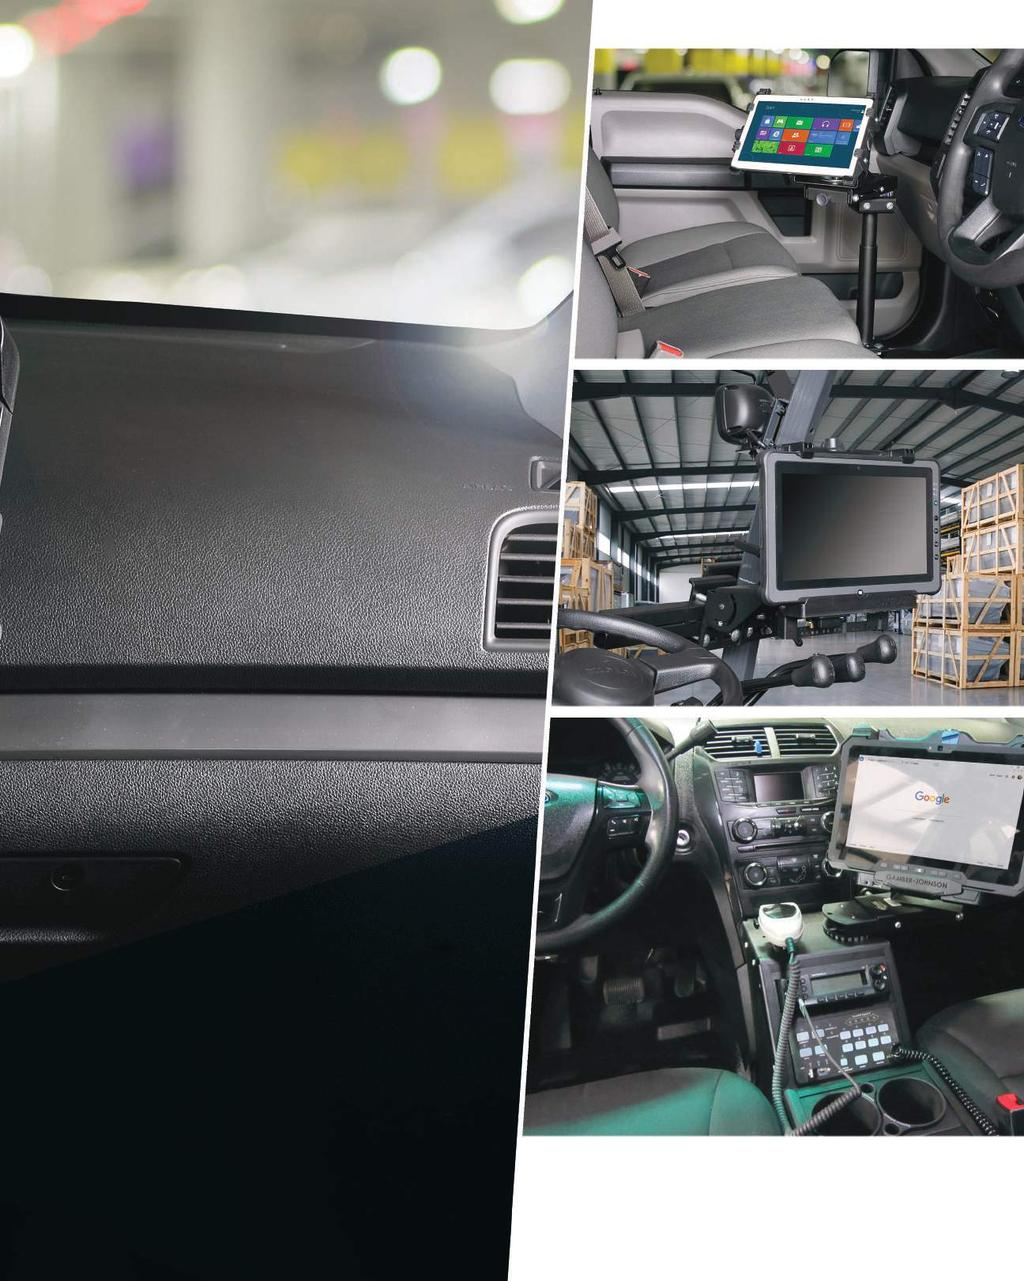 Equipment To Mount Electronic Devices Like Tablets And Radios In Unitrol Touchmaster Wiring Diagram Contents Vehicle Bases Find The Right Base Your Pole Or Console Box System